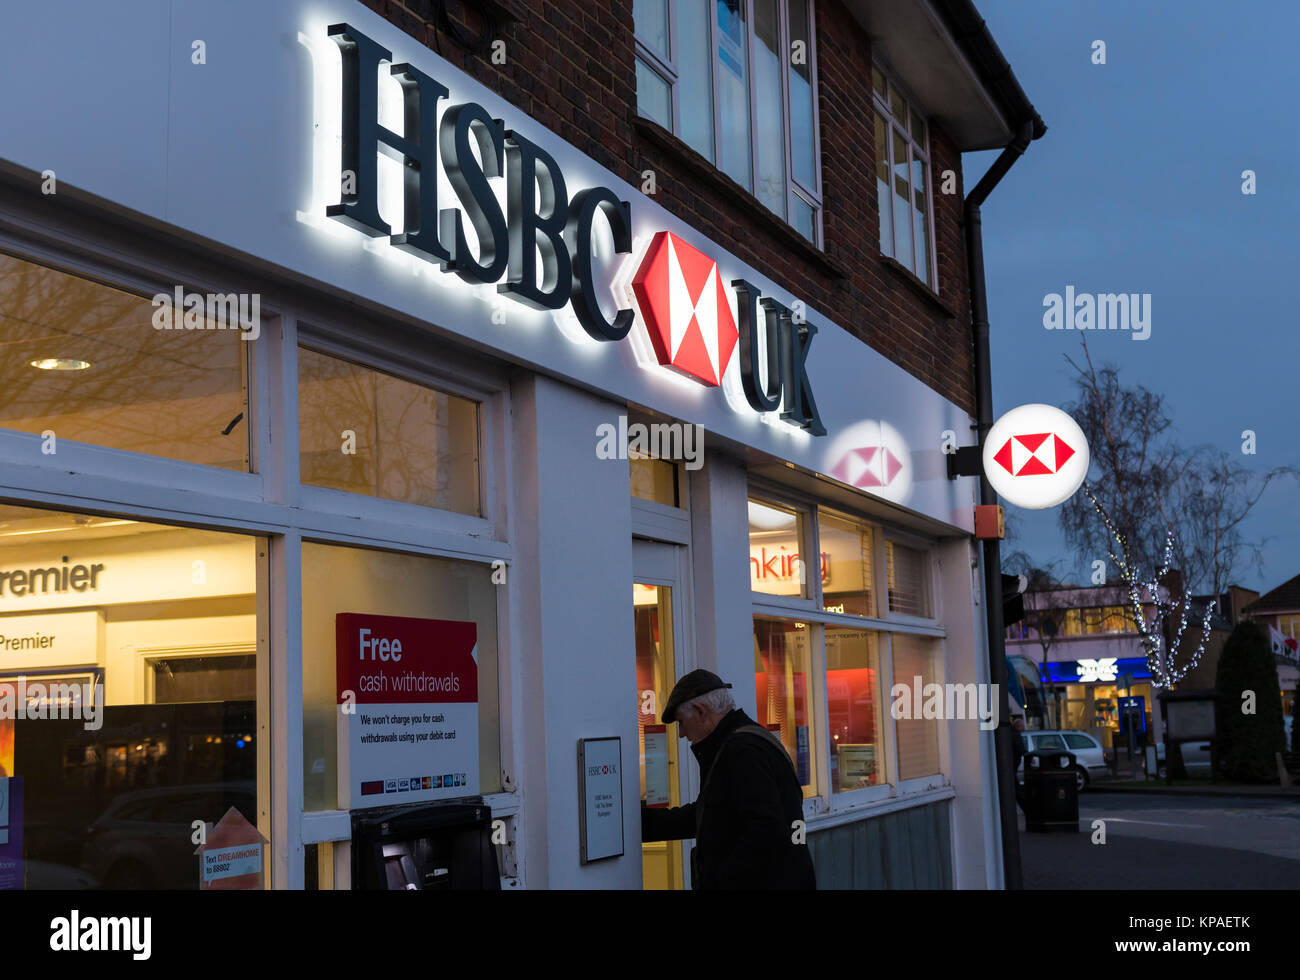 HSBC bank branch open into the evening in Winter in Rustington, West Sussex, England, UK. - Stock Image